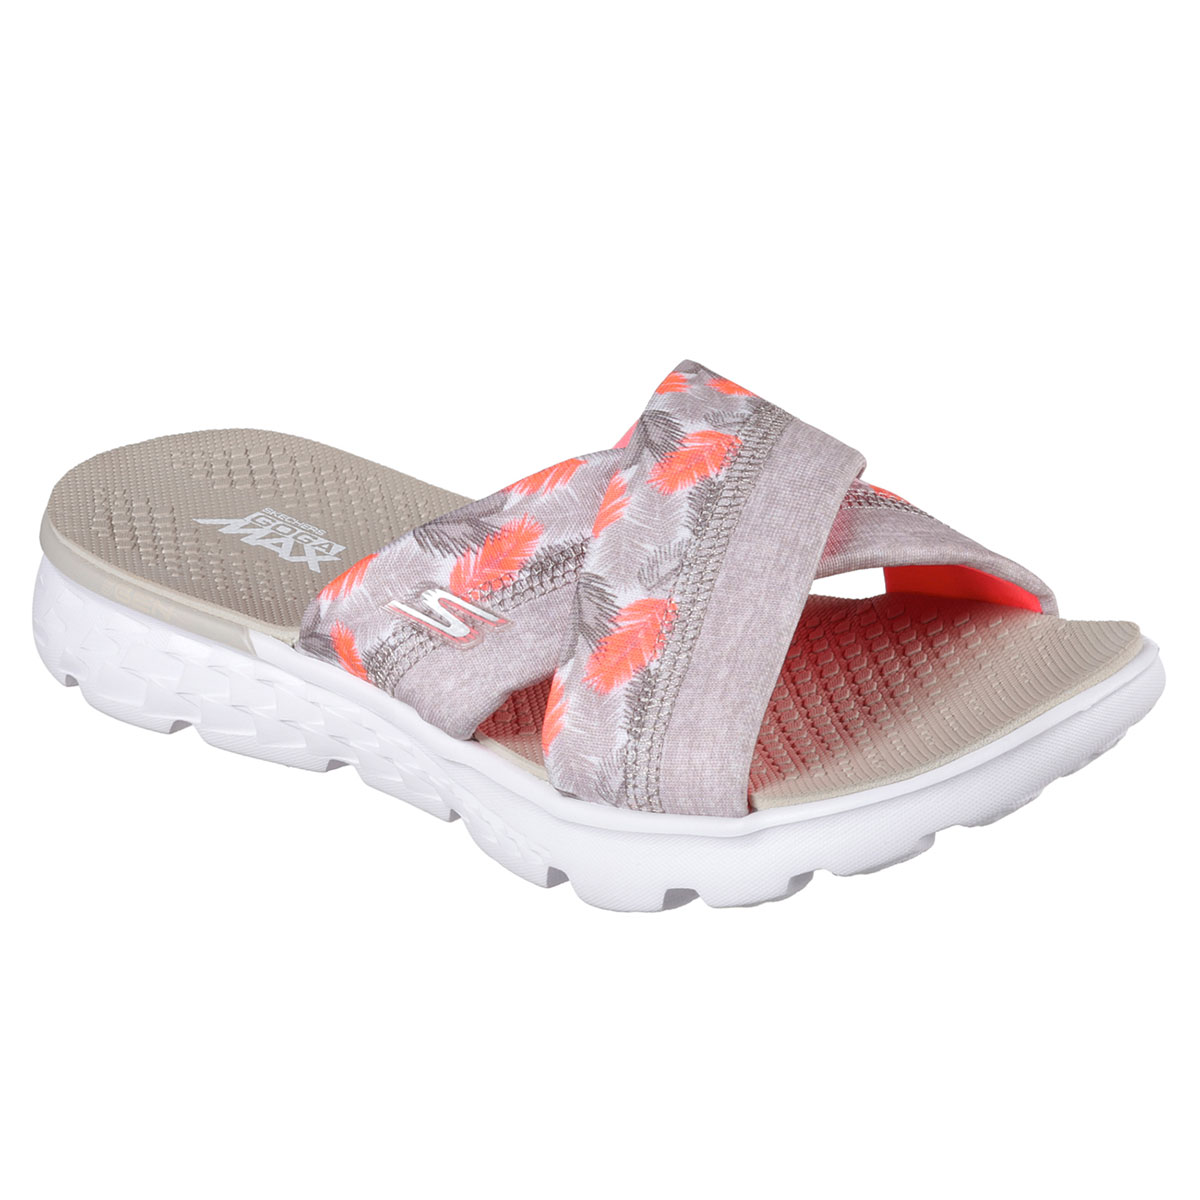 skechers sandals for women 2017